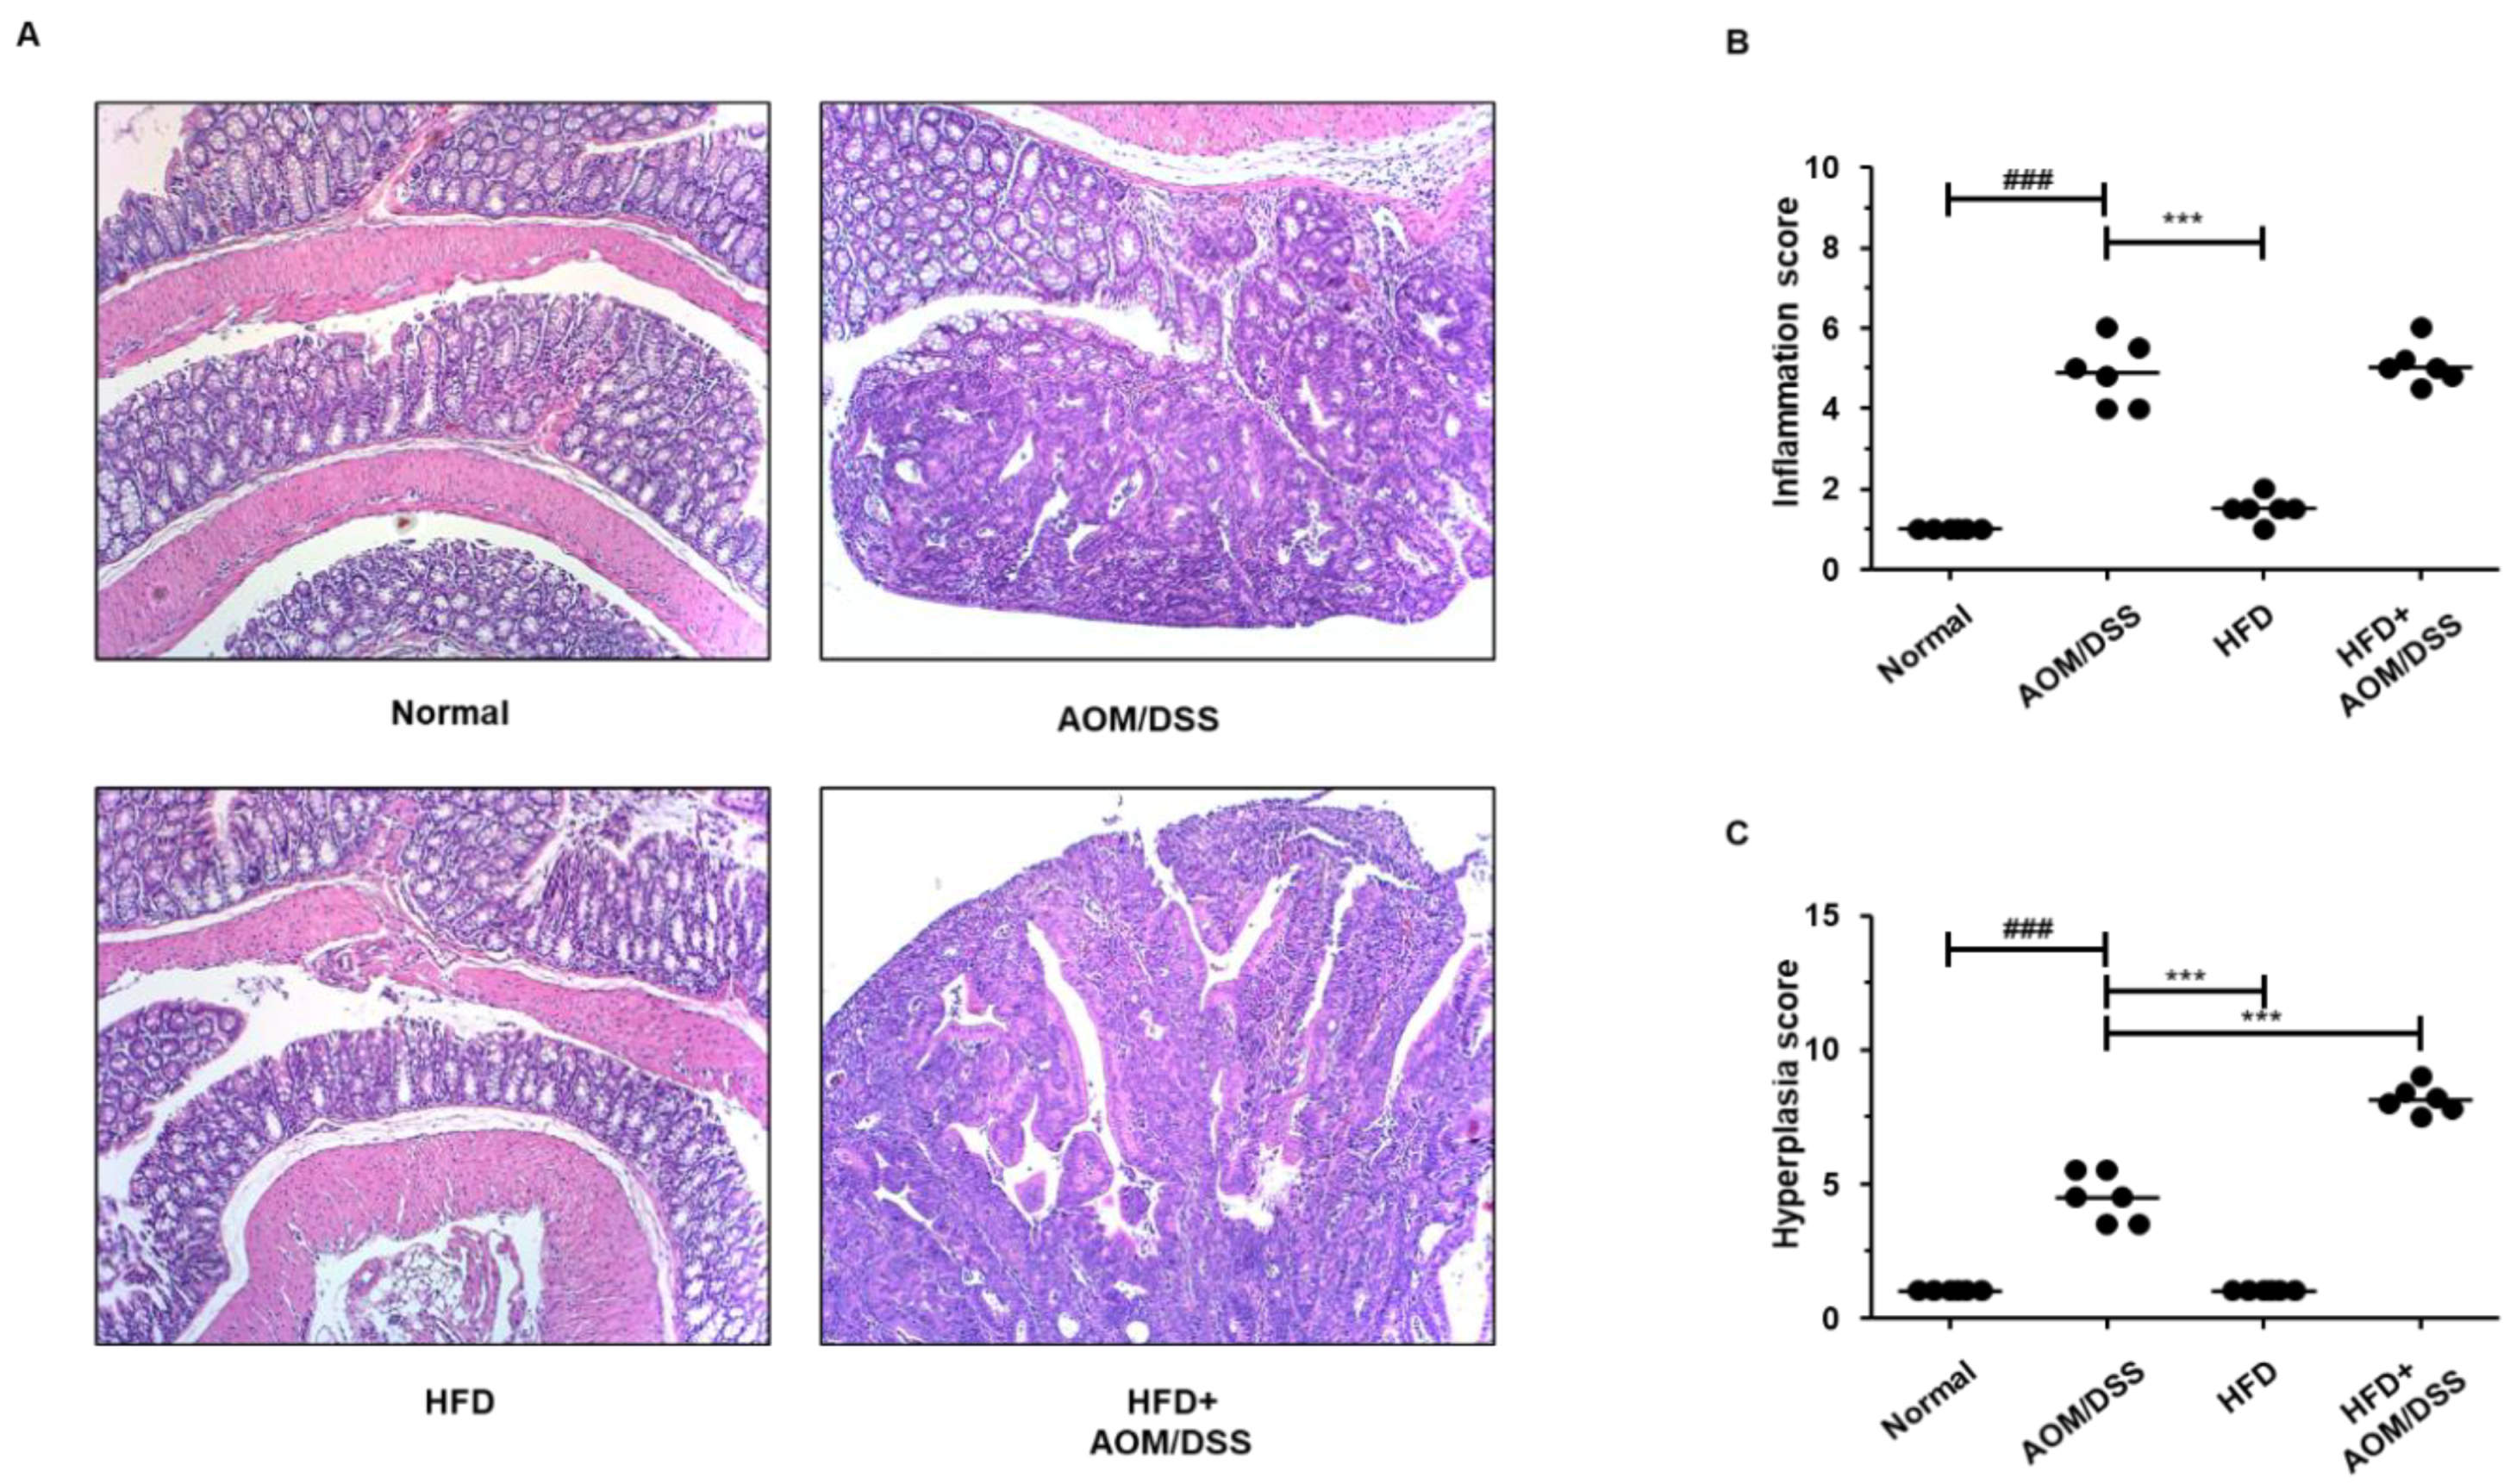 Biology Free Full Text High Fat Diet Propelled Aom Dss Induced Colitis Associated Colon Cancer Alleviated By Administration Of Aster Glehni Via Stat3 Signaling Pathway Html